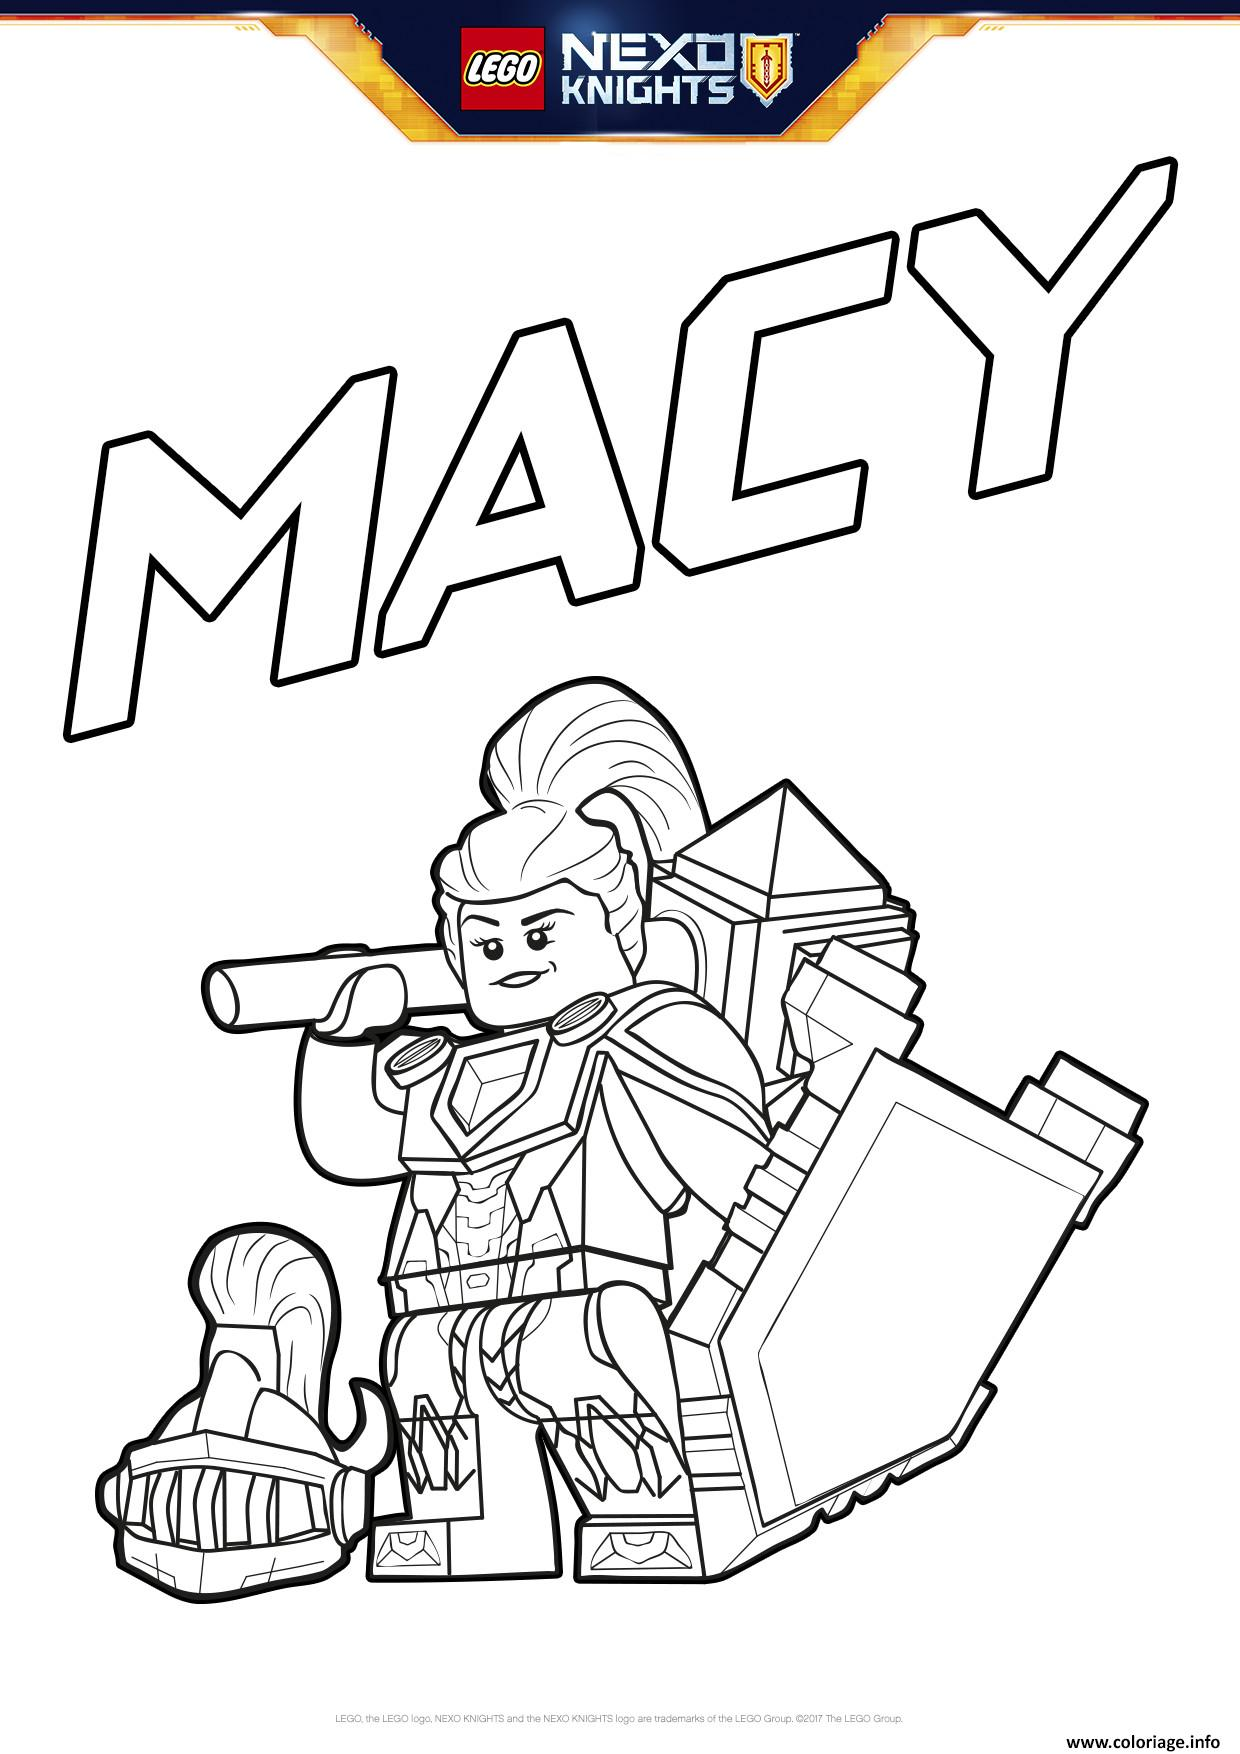 coloriage lego nexo knights bouclier macy - jecolorie